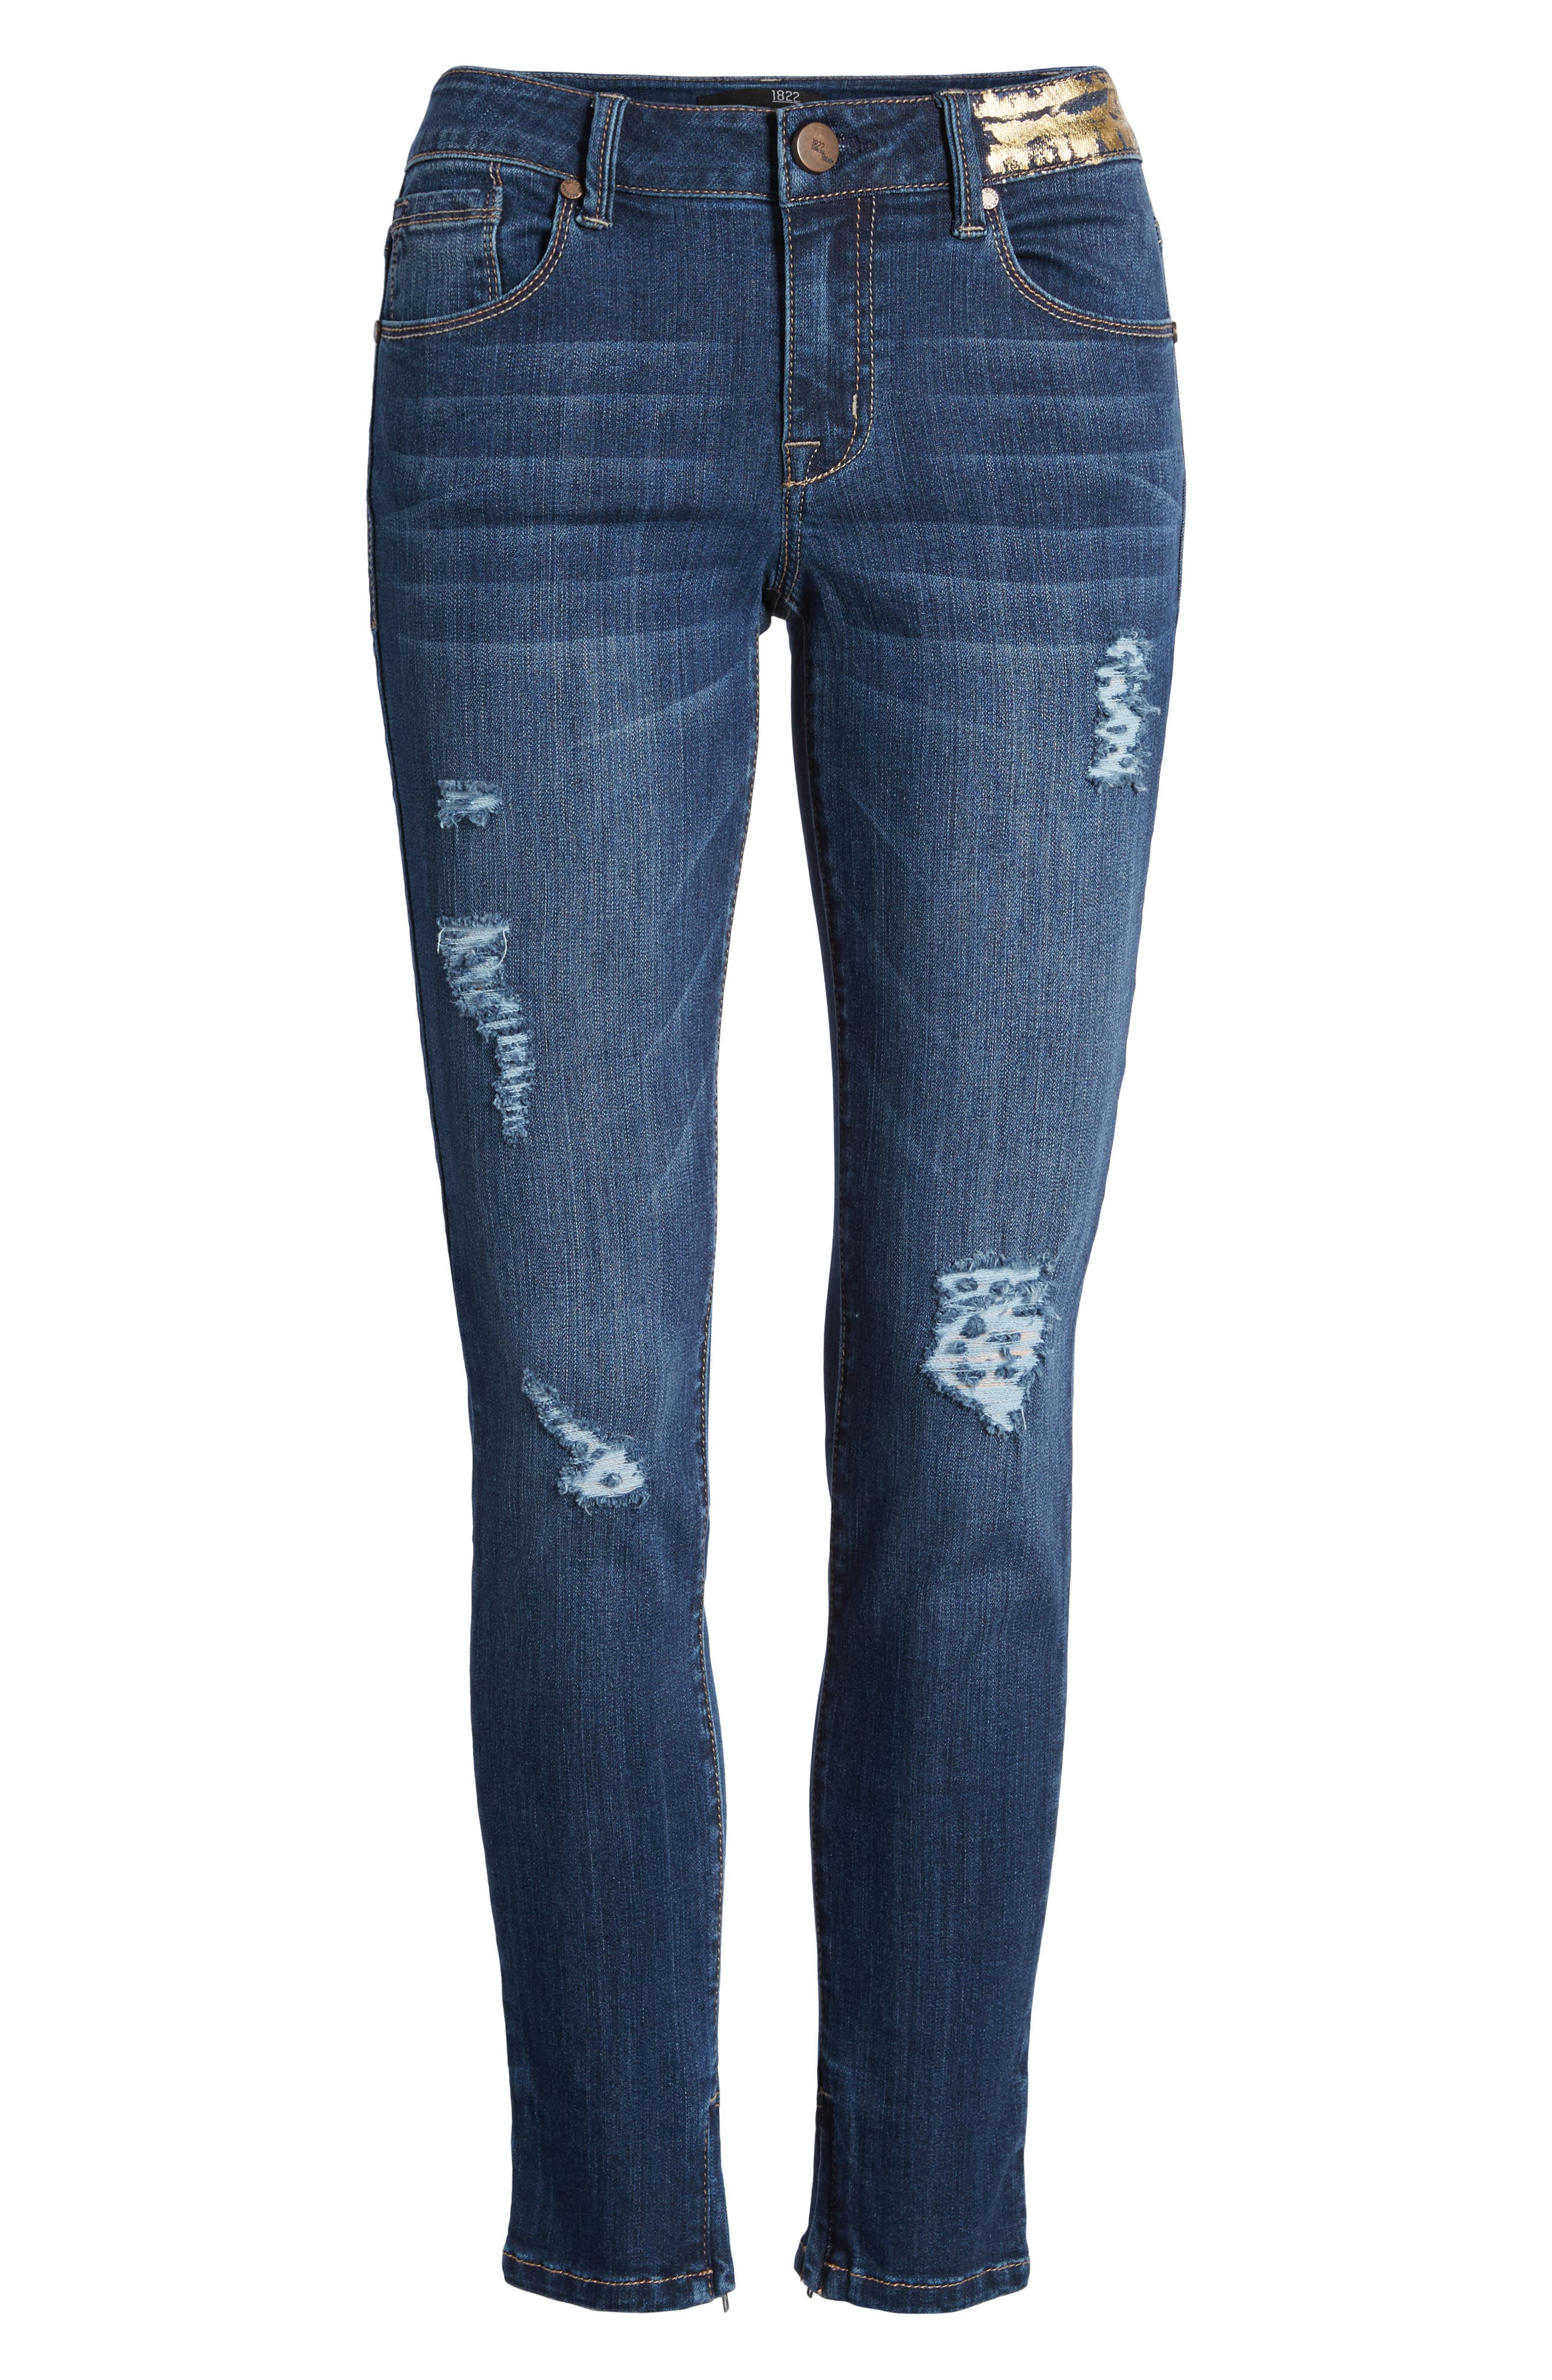 Gold Waist Ankle Zip Skinny Jeans,                             Alternate thumbnail 7, color,                             403